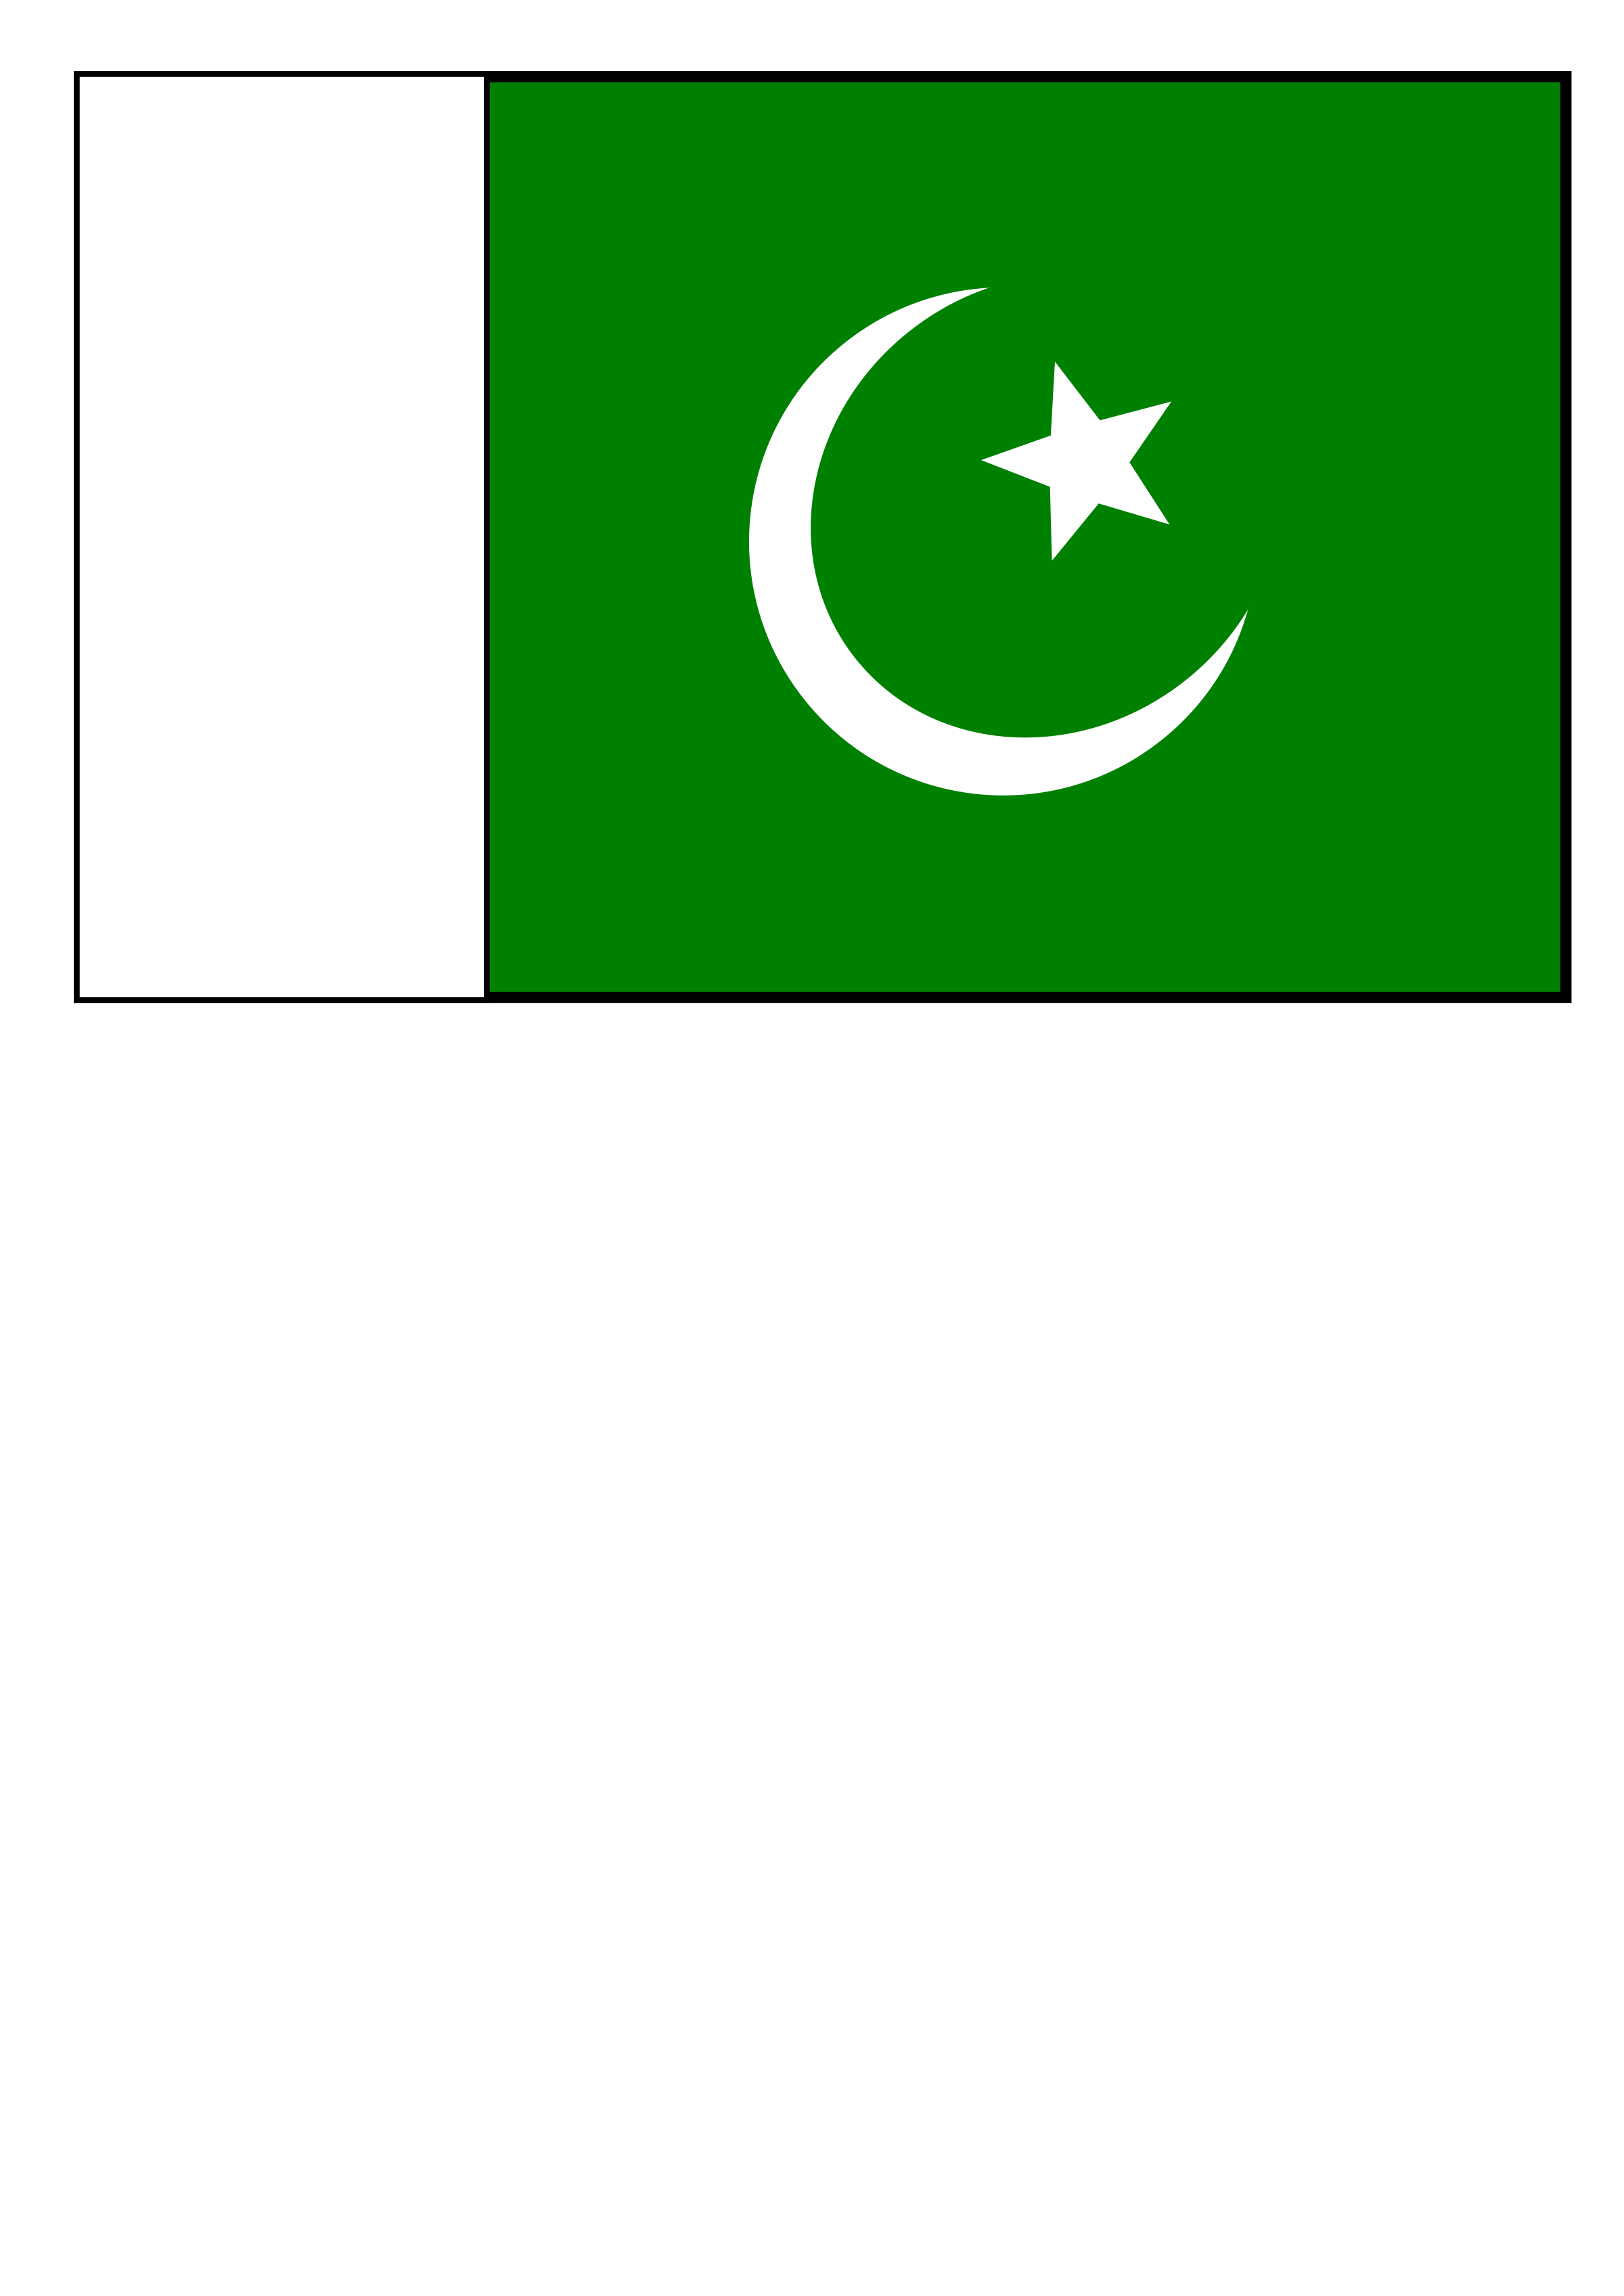 HQ Flag Of Pakistan Wallpapers | File 65.26Kb